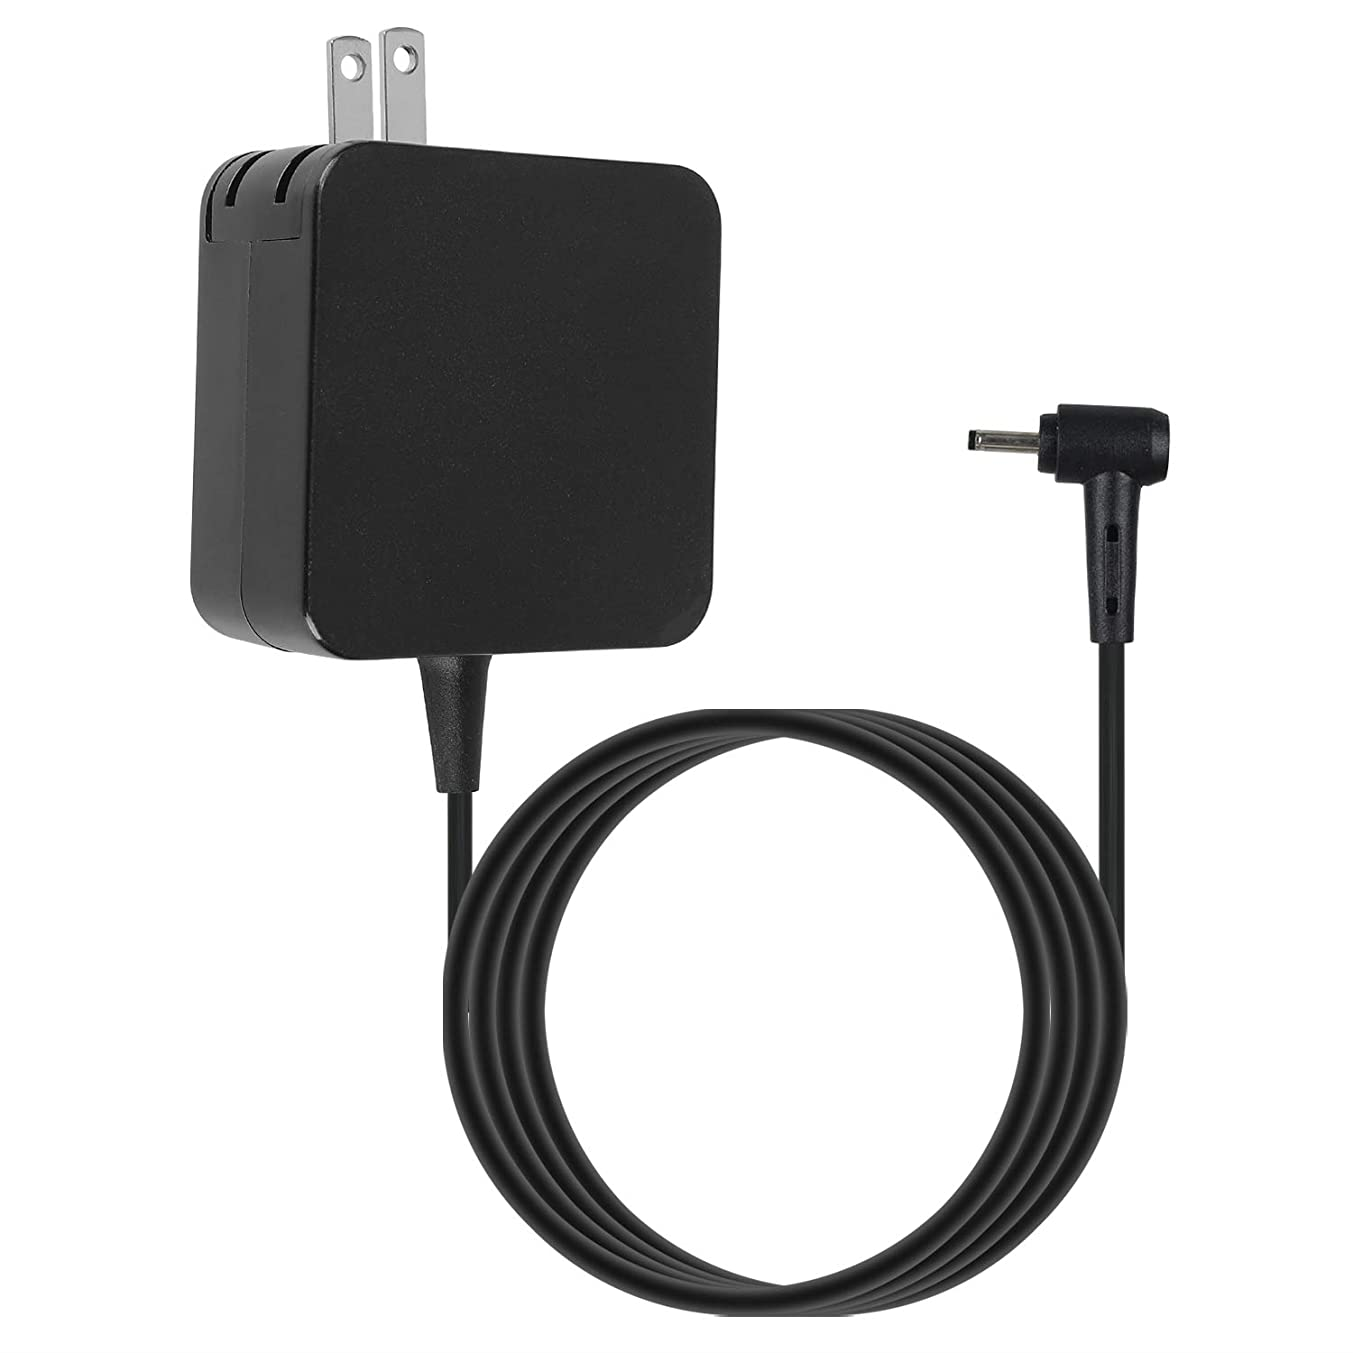 19V 2.37A 45W Adapter Charger for Acer Chromebook 11 13 14 15 R11 C730 C731 C735 C810 CB3 CB3-431 CB3-531 CB3-111 CB3-131 CB5-311 Laptop.